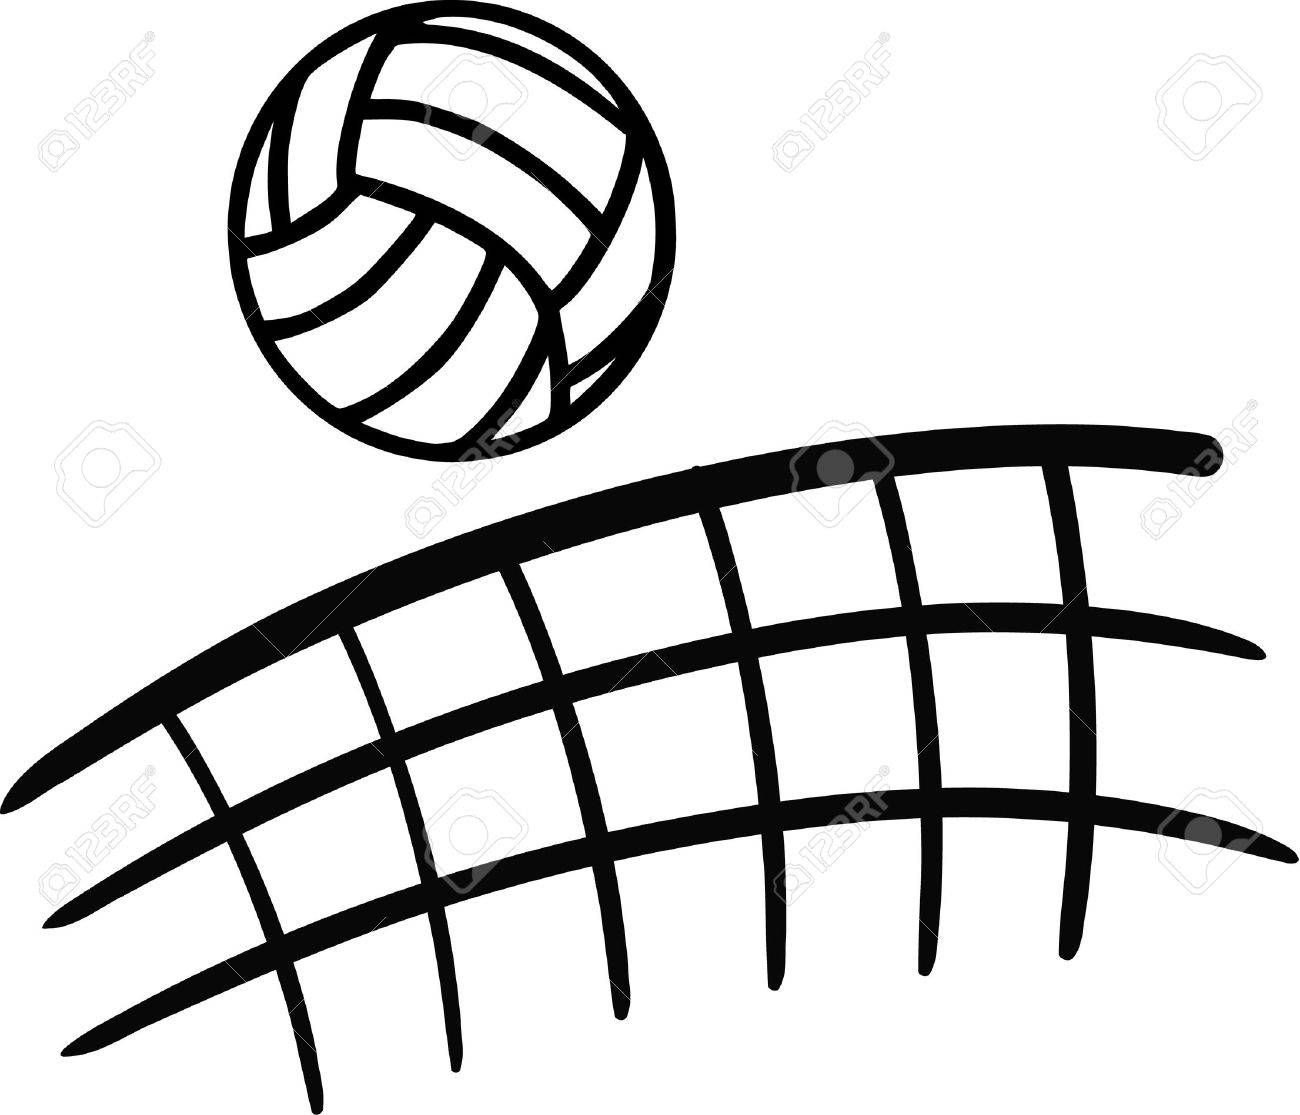 Flying volleyball clipart graphic black and white Flying volleyball clipart 4 » Clipart Station graphic black and white